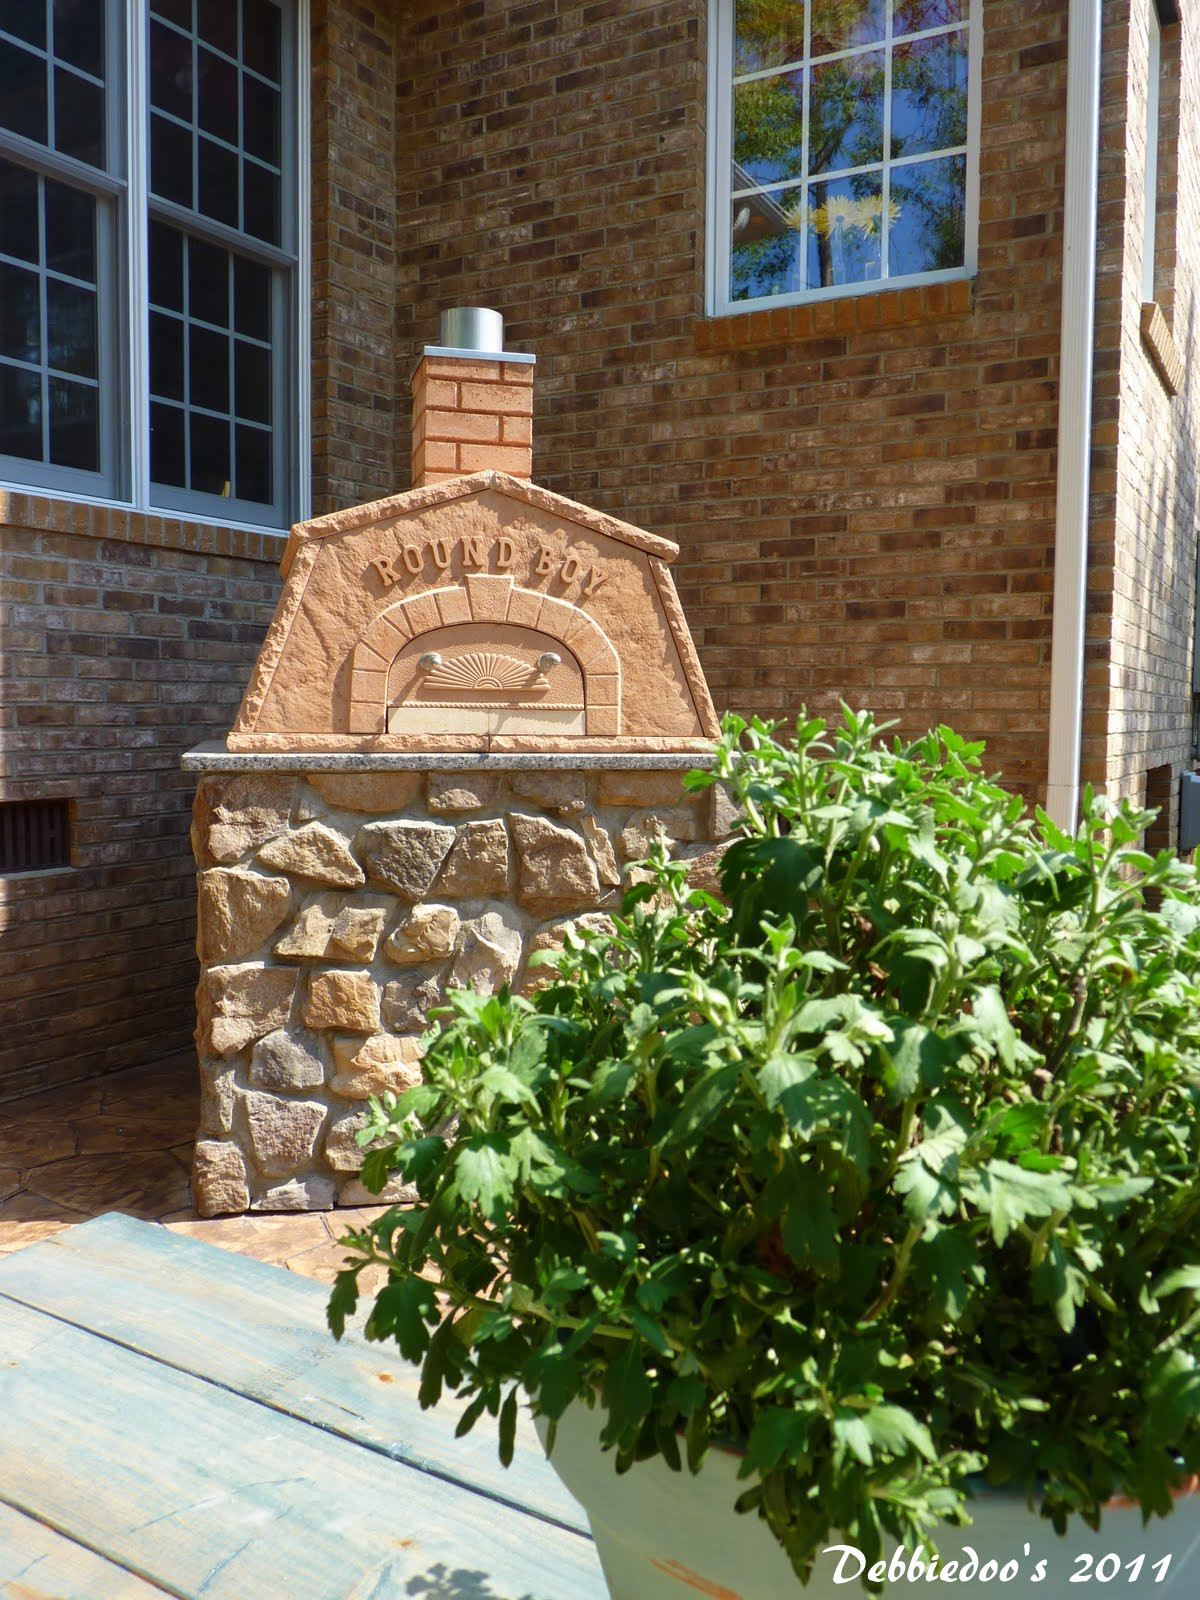 Best ideas about DIY Outdoor Pizza Oven . Save or Pin DIY Outdoor pizza oven Debbiedoo s Now.